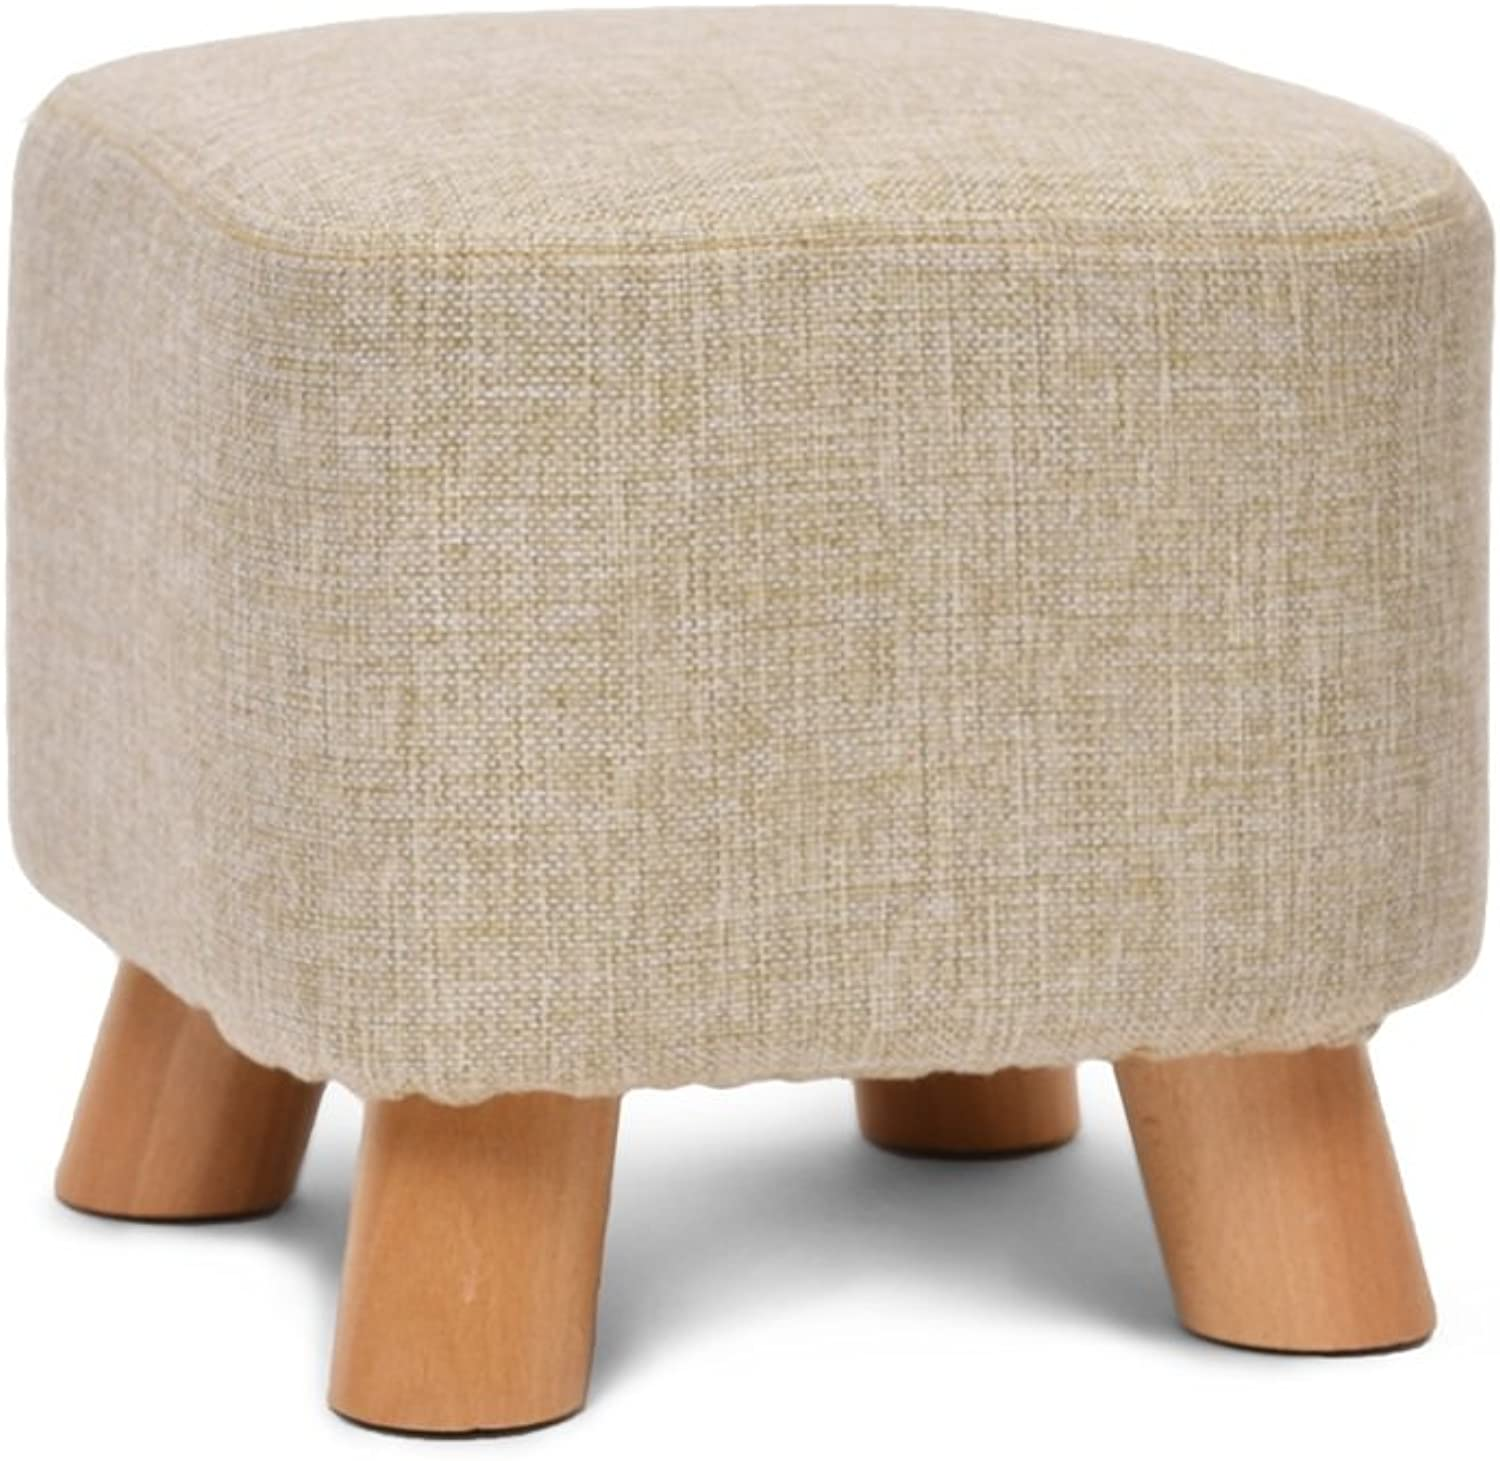 Footstools, Stool Solid Wood Footstool 4 Legs Detachable Linen Cover Padded Bed End Stool (color   A)